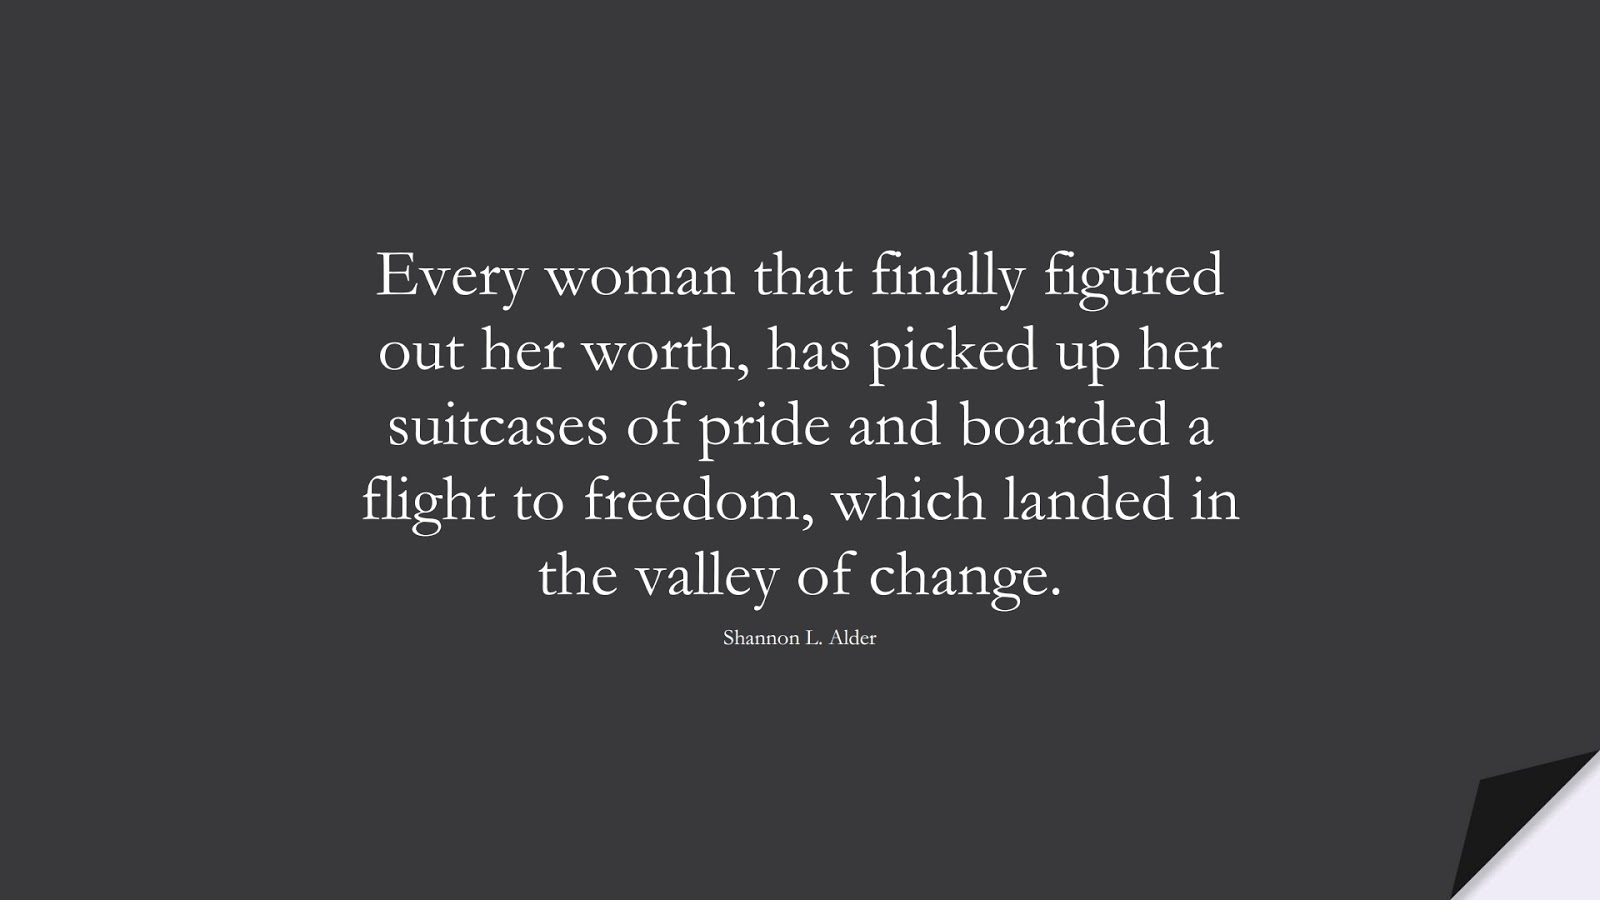 Every woman that finally figured out her worth, has picked up her suitcases of pride and boarded a flight to freedom, which landed in the valley of change. (Shannon L. Alder);  #ChangeQuotes